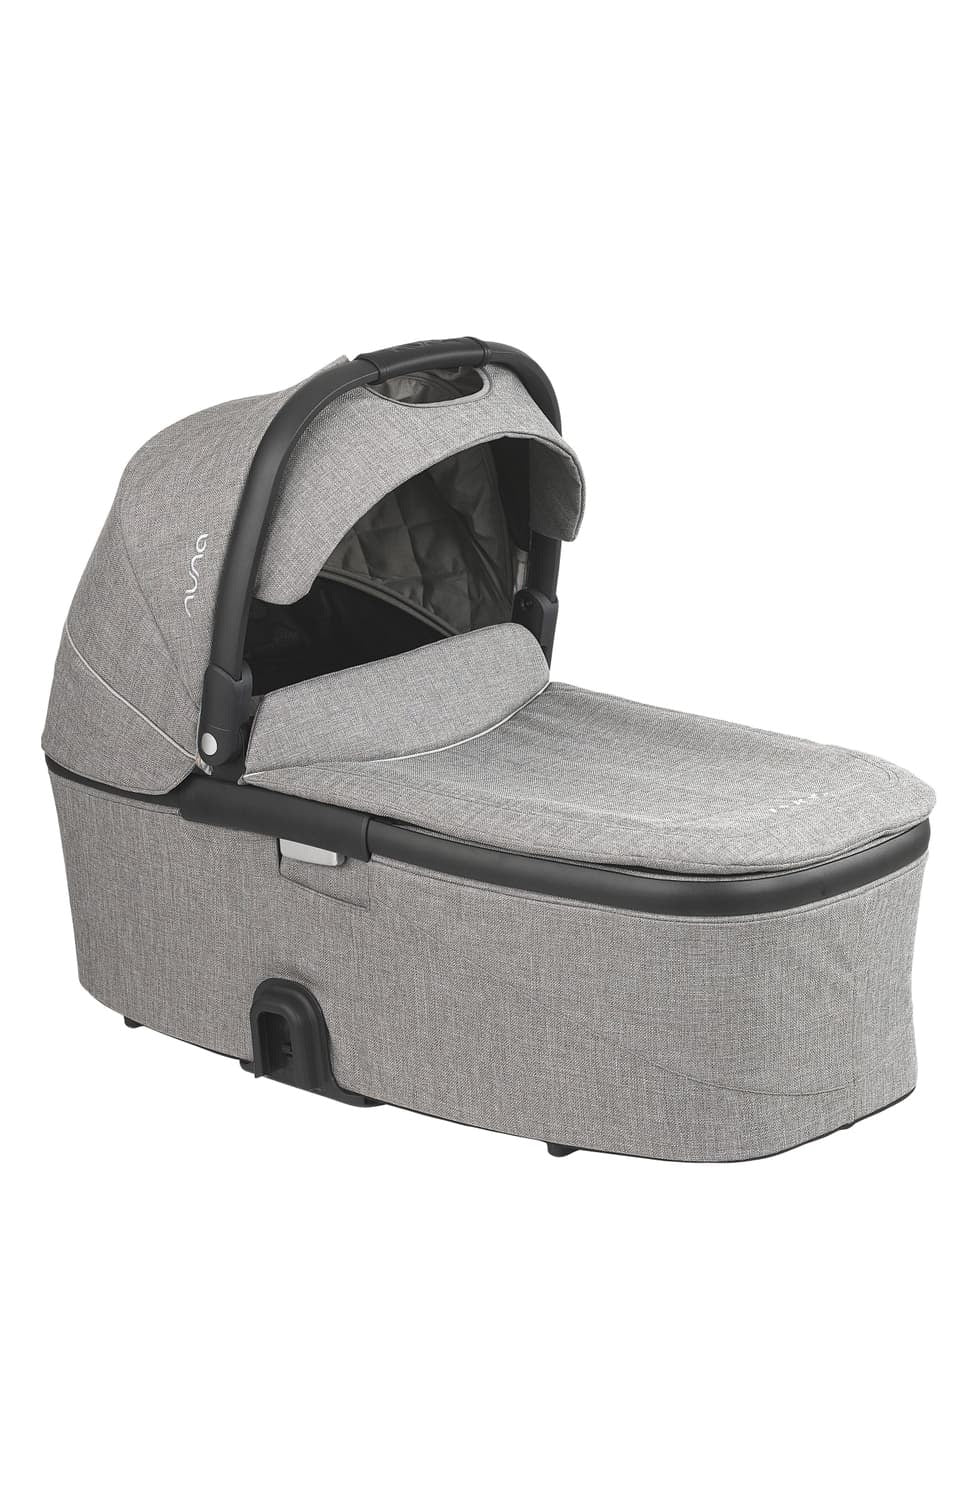 Nuna DEMI Grow Bassinet - Le Bébé Chic Boutique